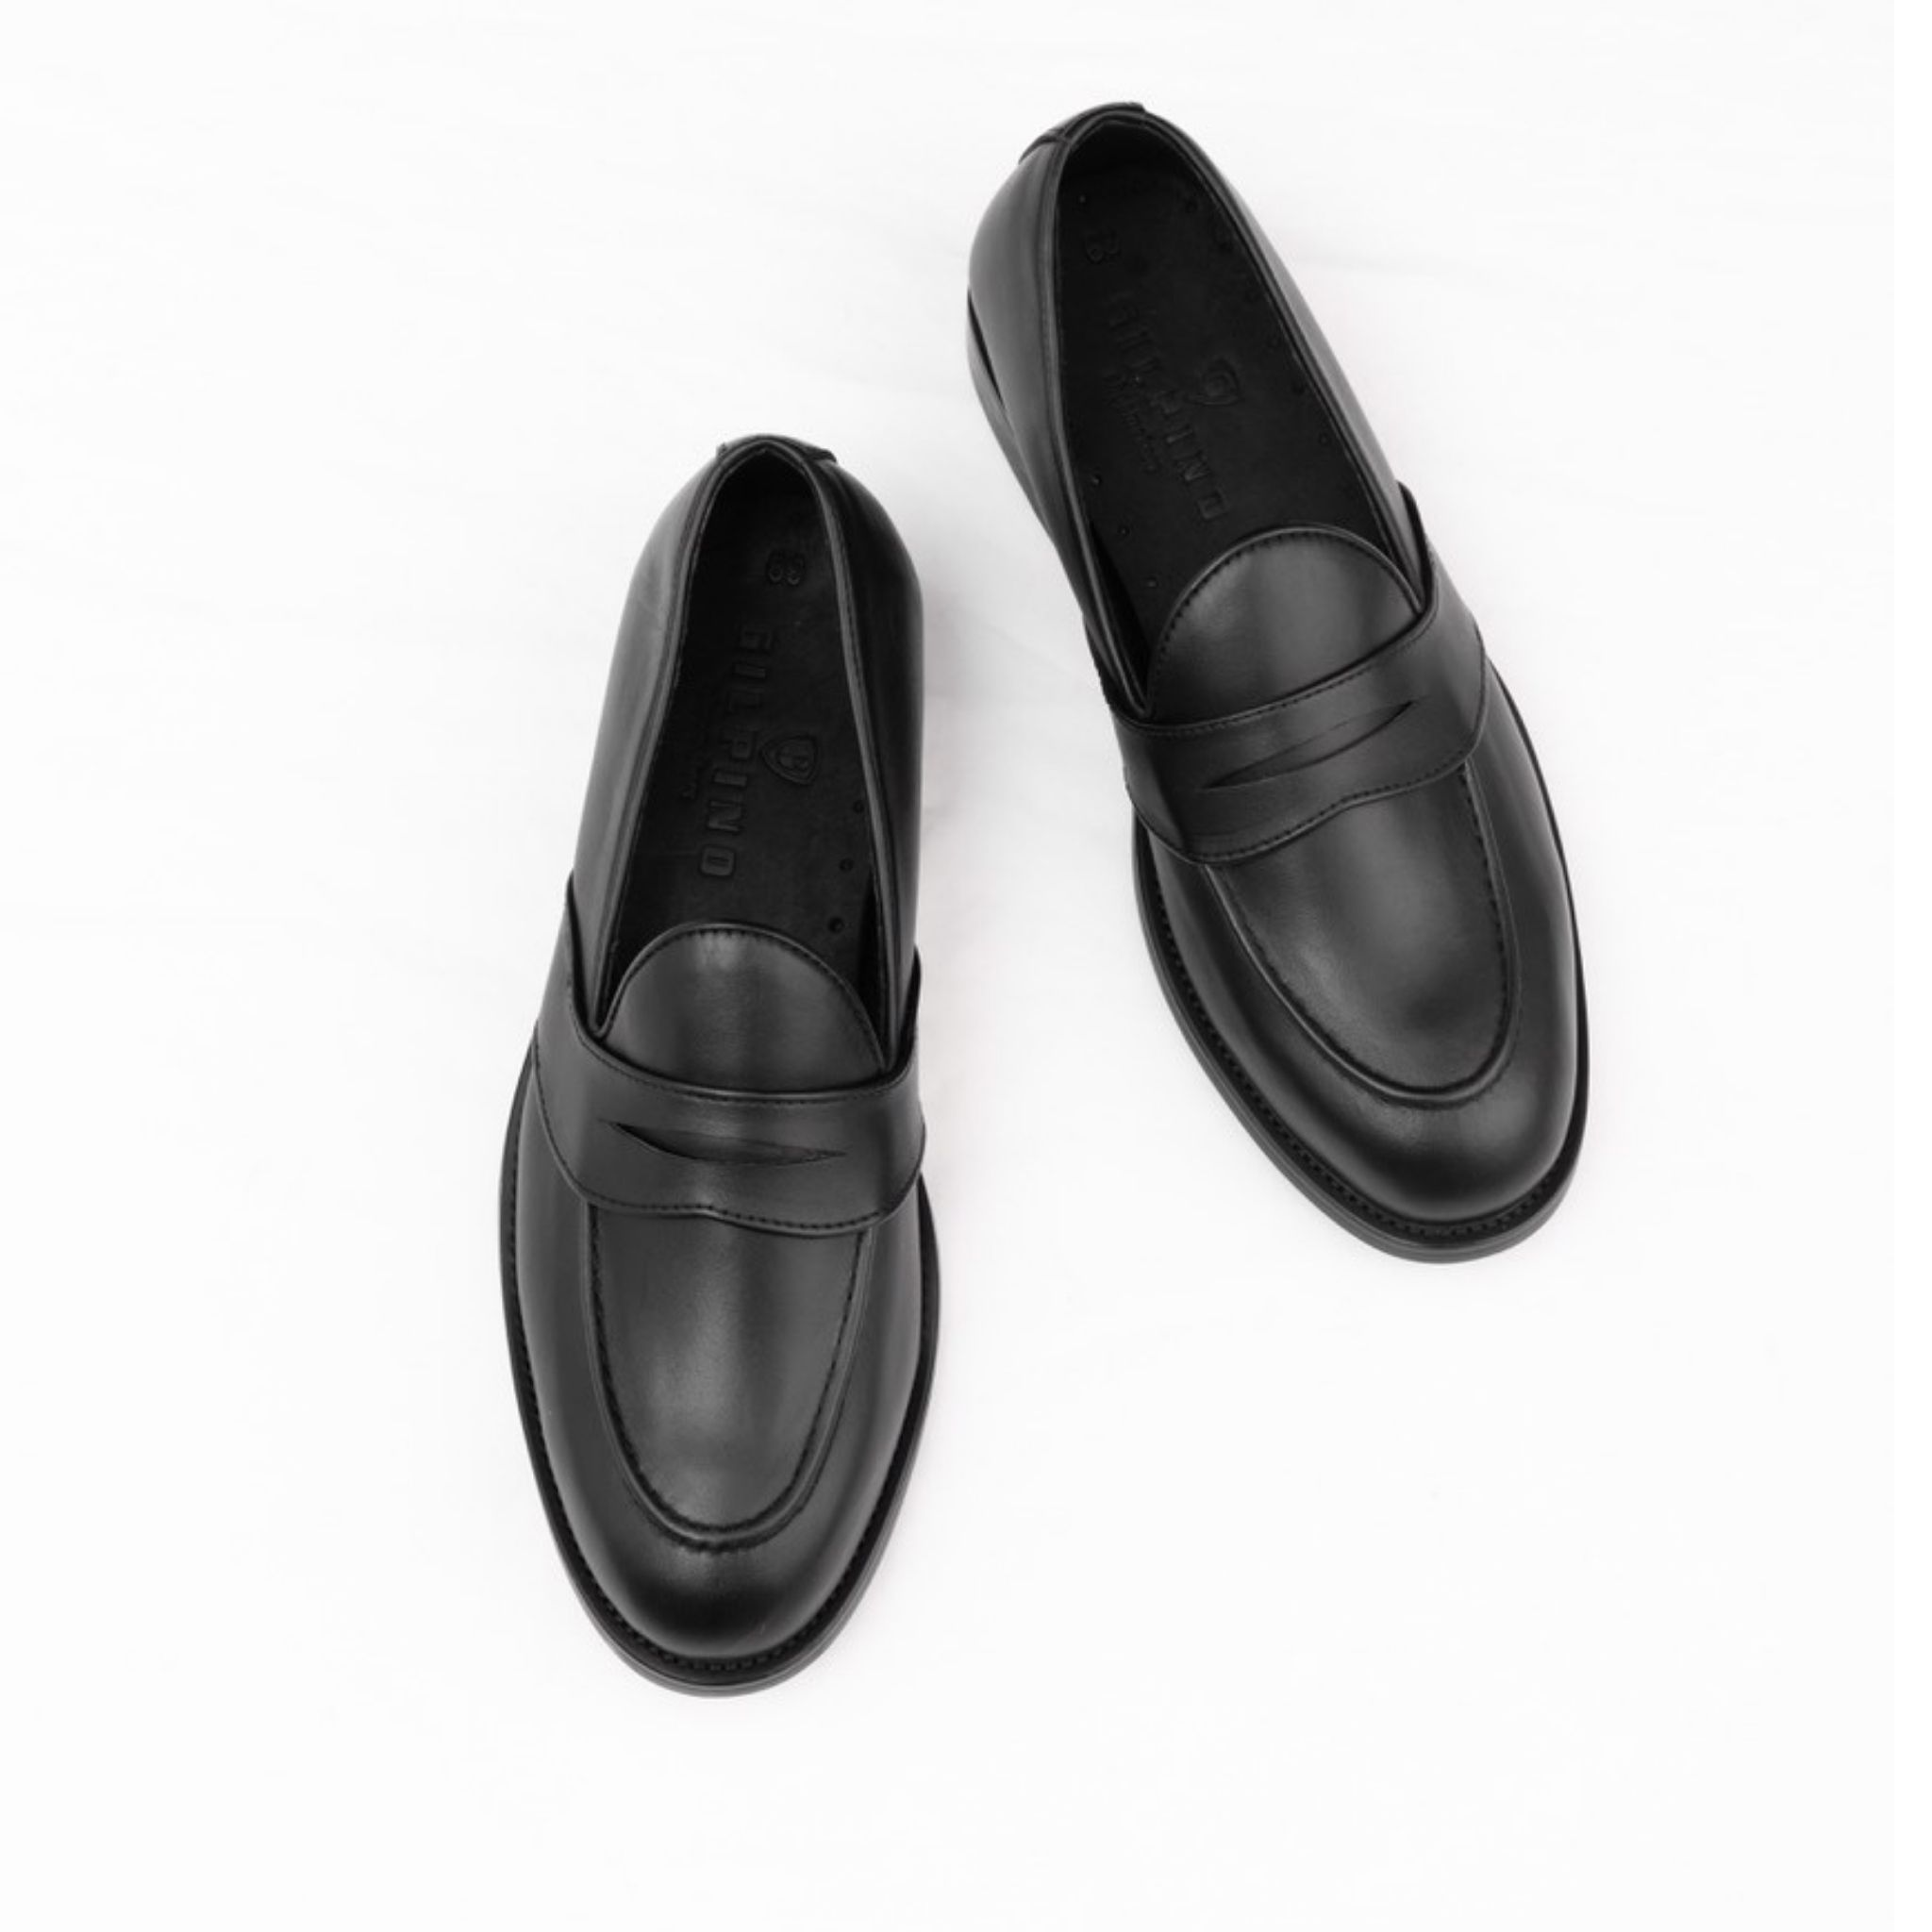 Wing 01 - Loafers black